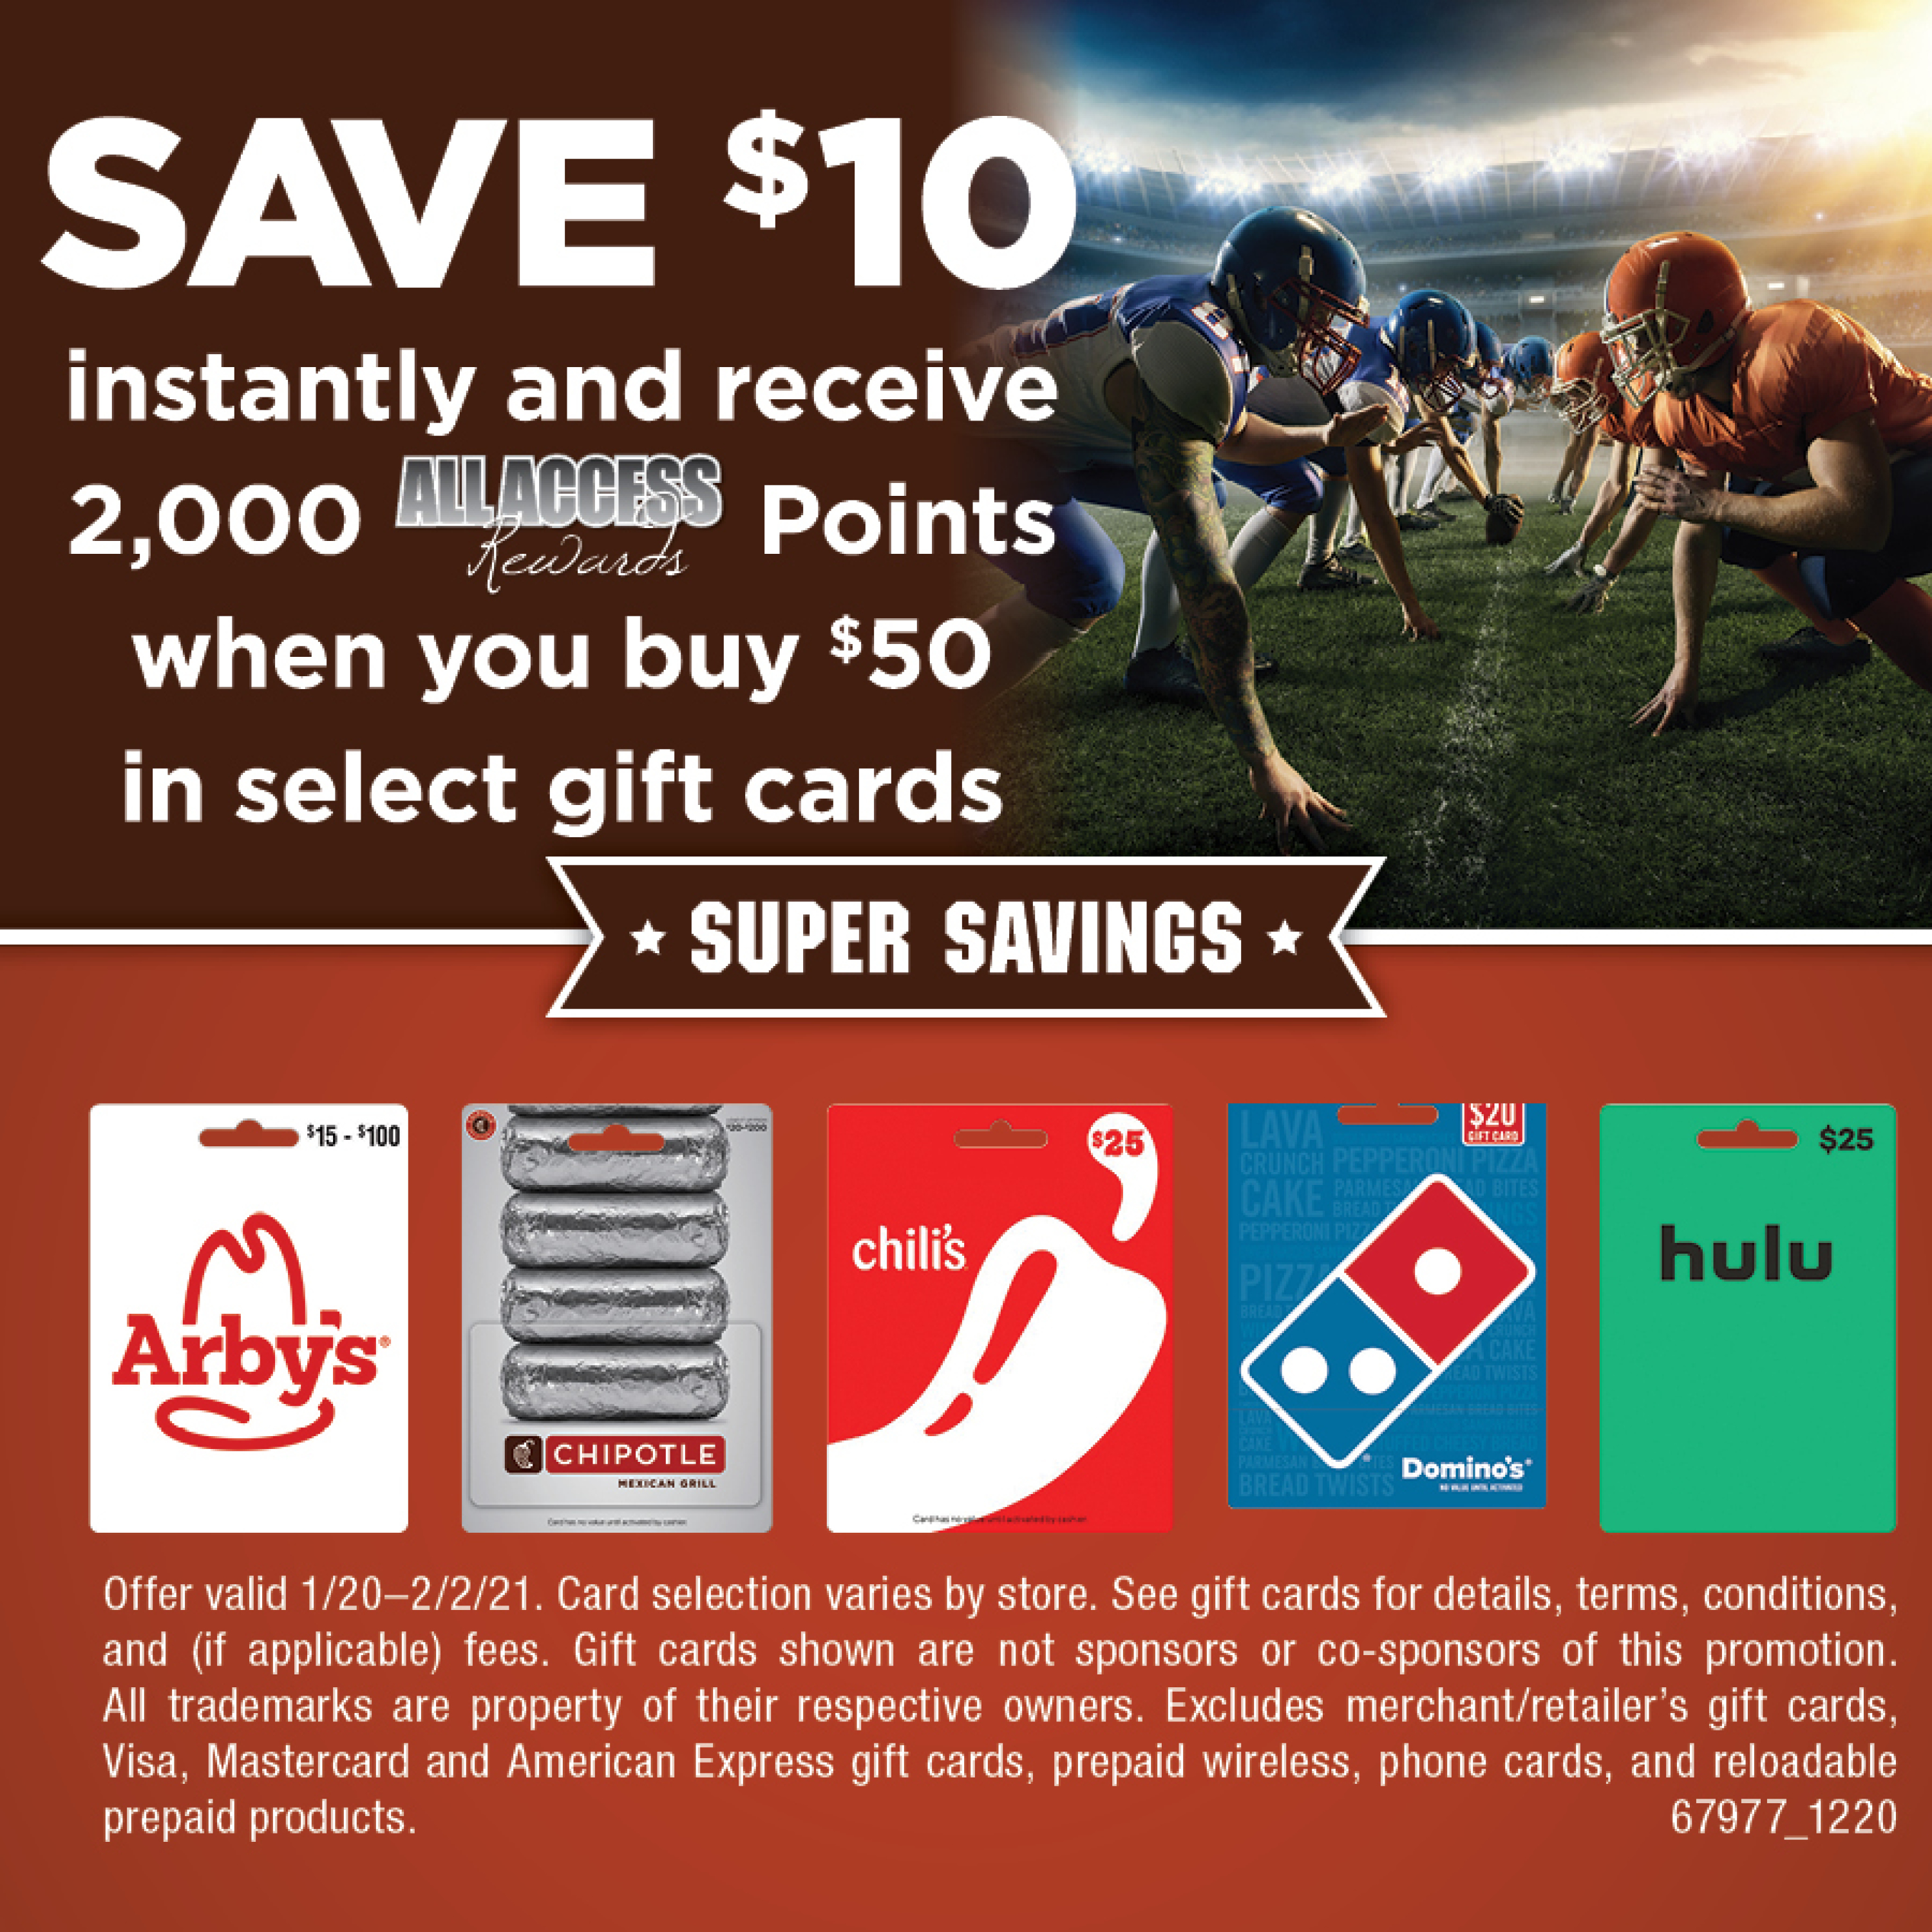 SAVE $10 INSTANTLY AND RECEIVE 2000 AAR POINTS